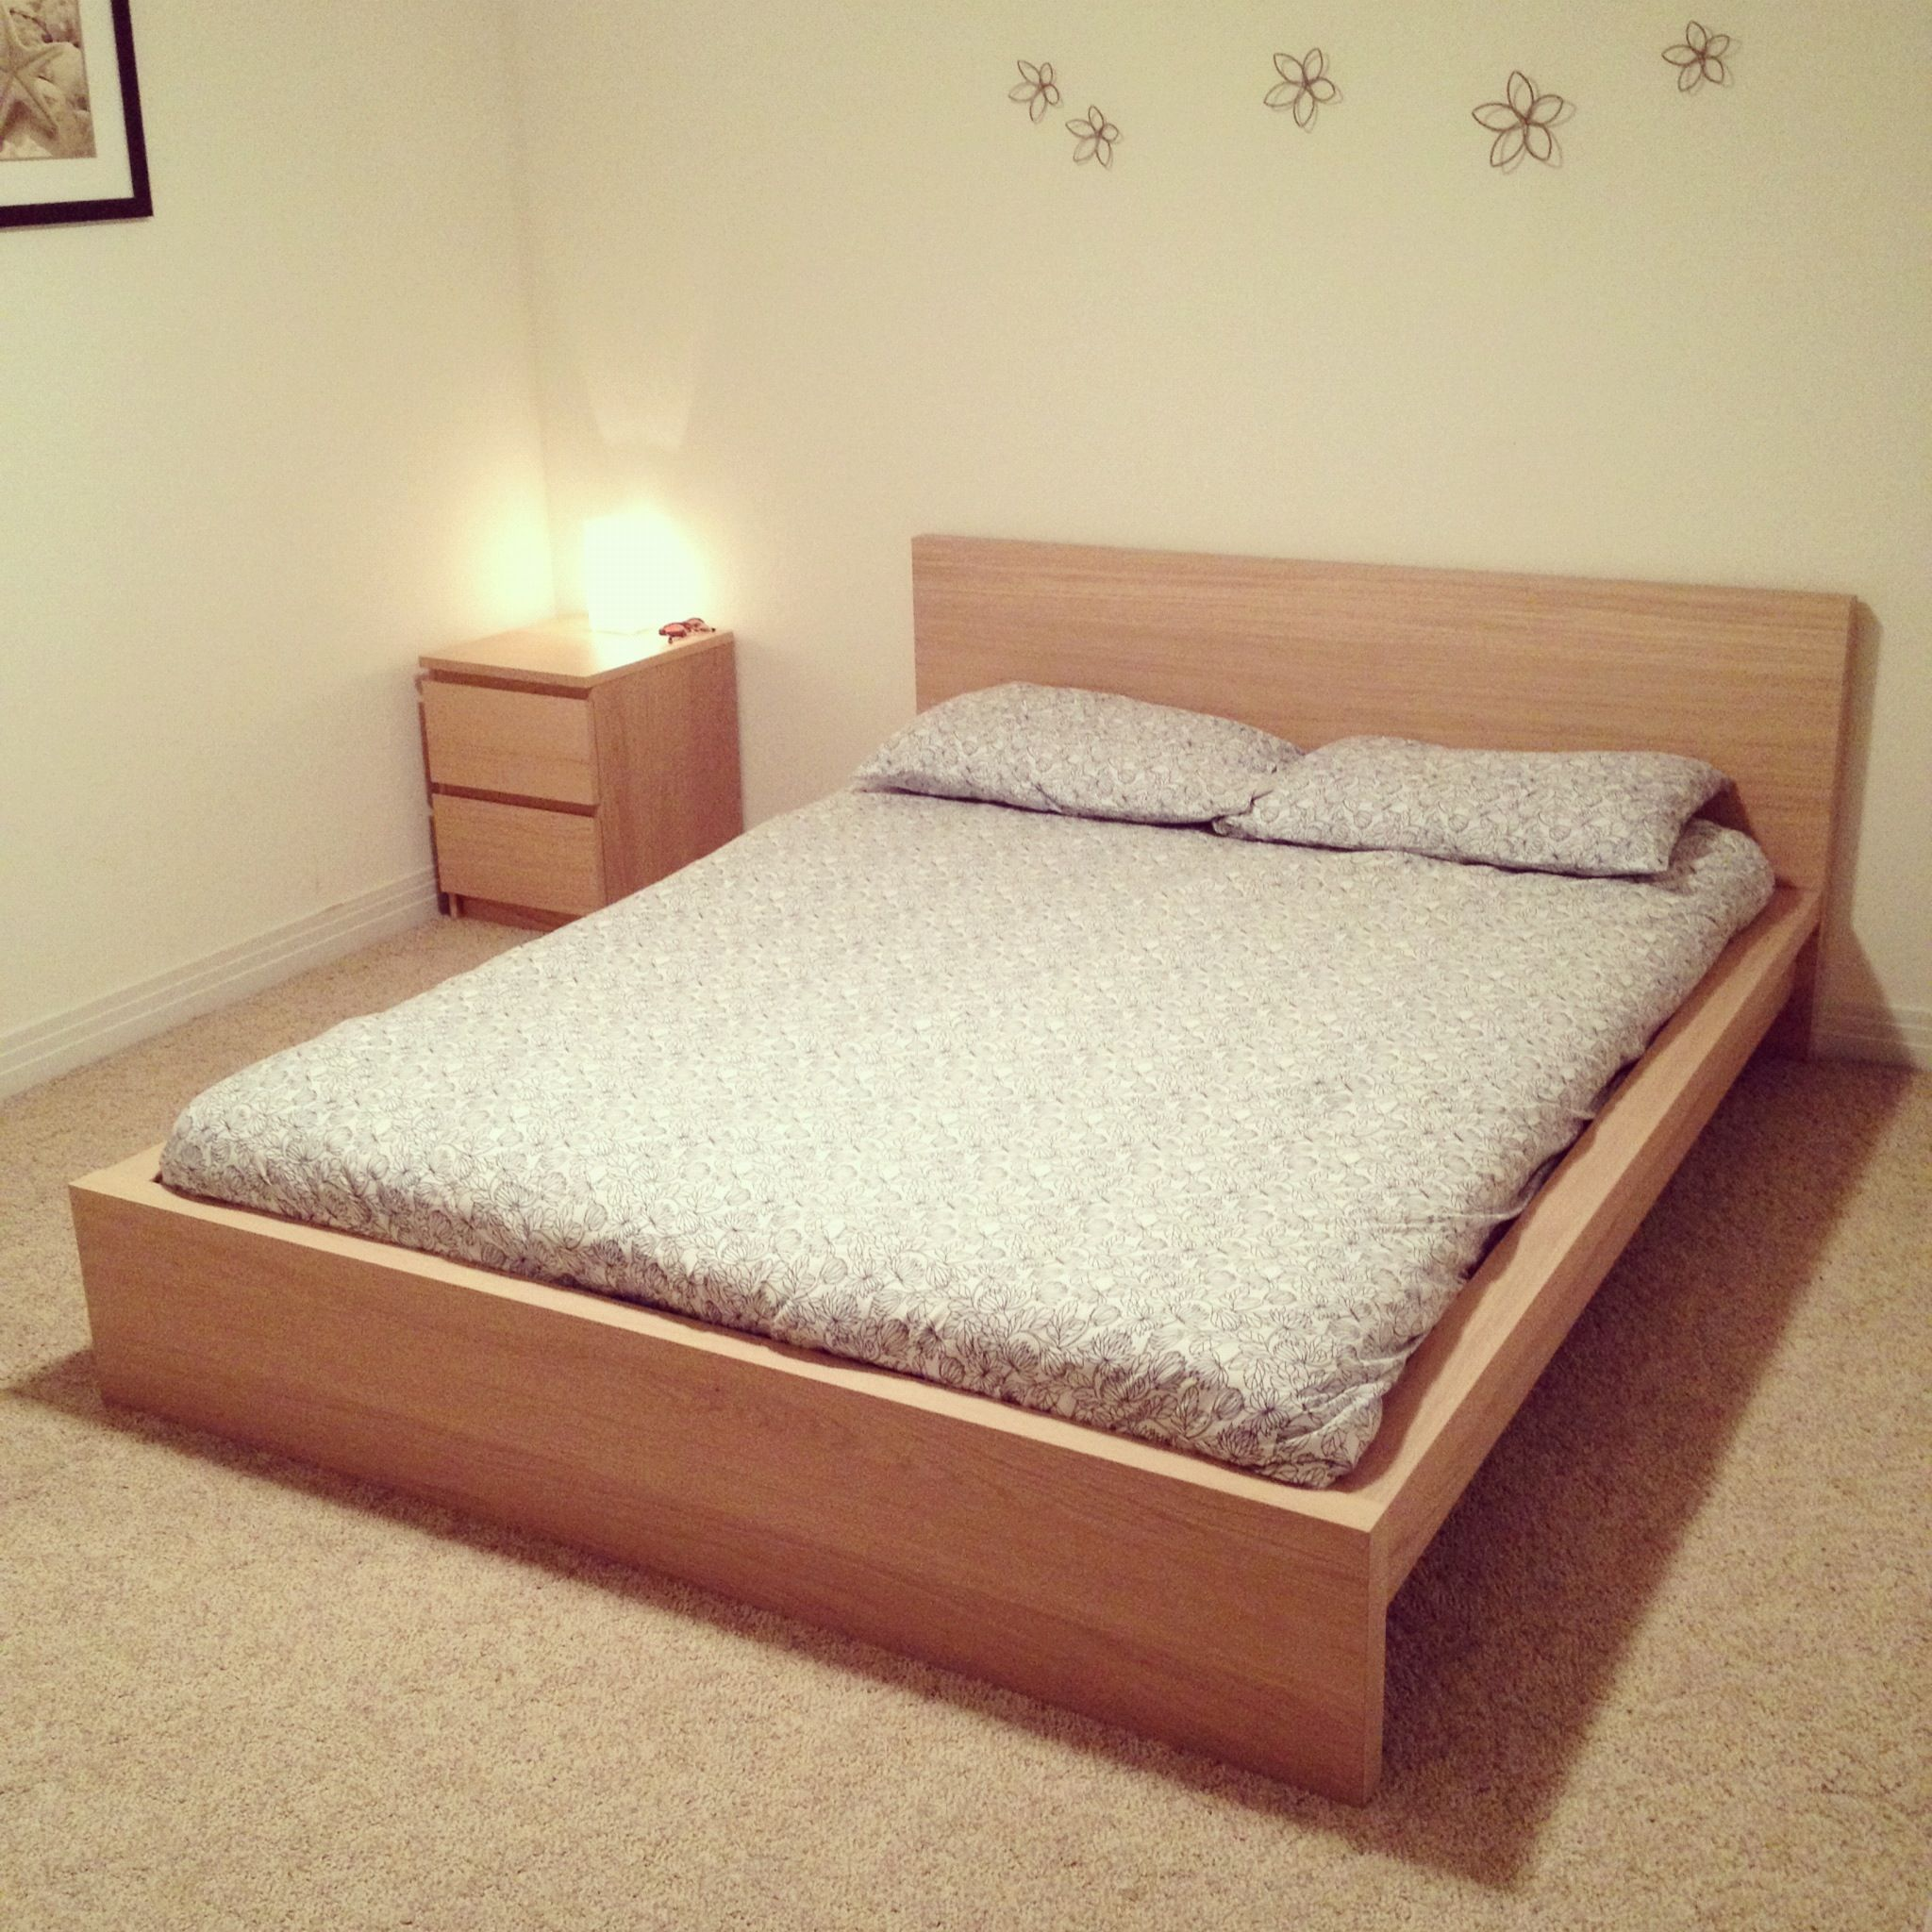 Ikea Malm Bed With Side Dresser For The Home Pinterest